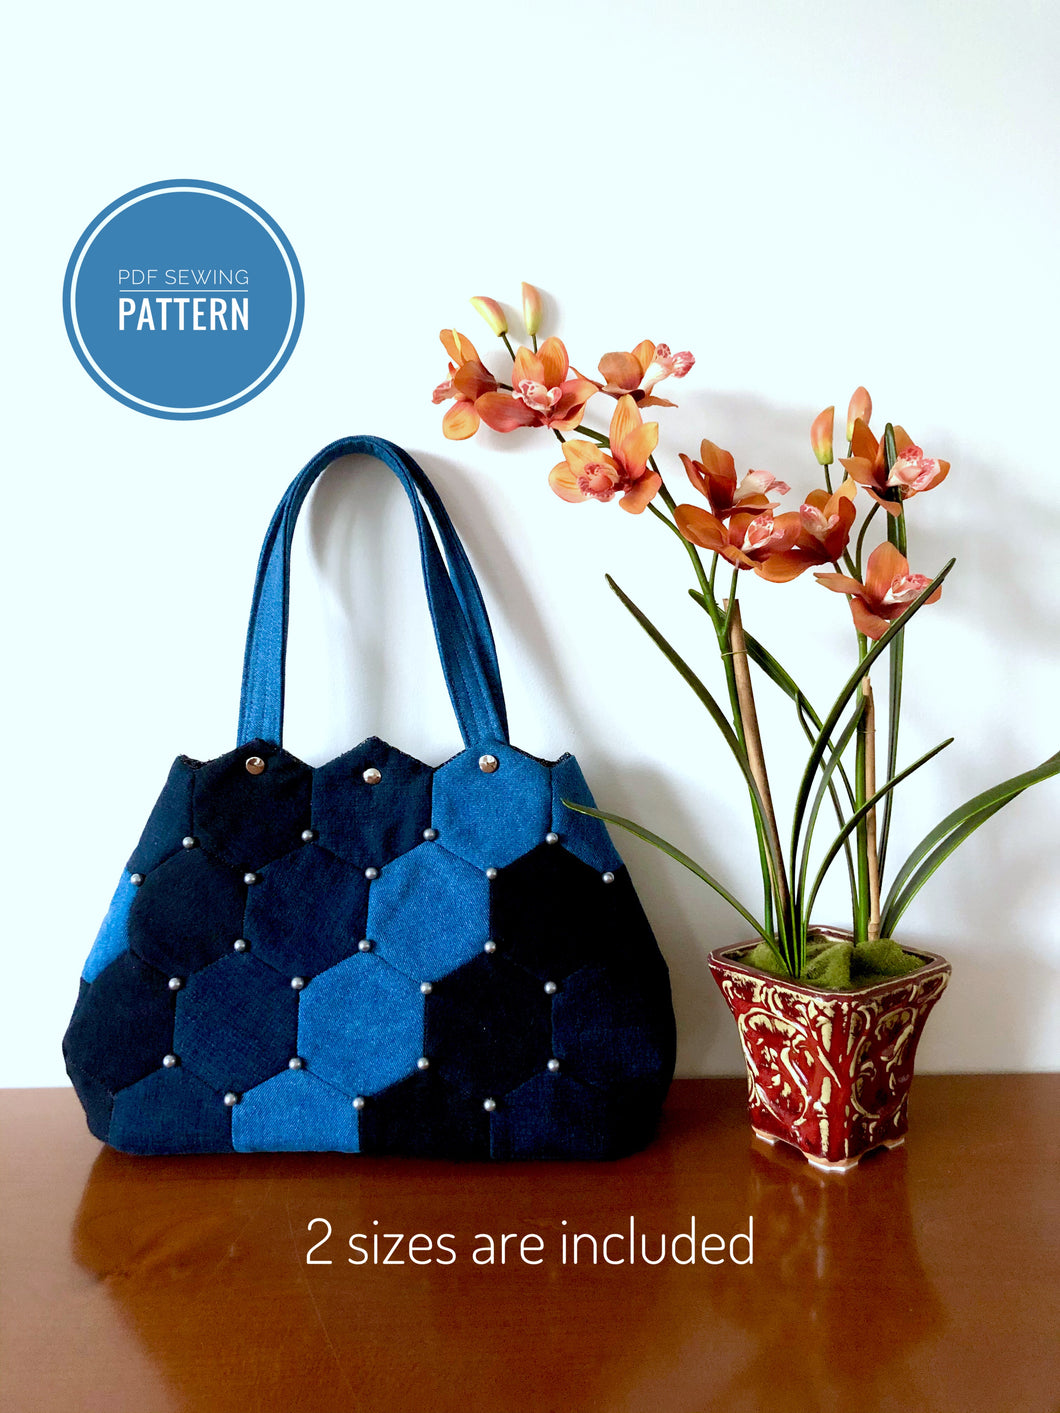 Hexagon patchwork sewing pattern; Denim patchwork pattern; PDF pattern; Patchwork handbag; Sewing pattern; Denim Handbag